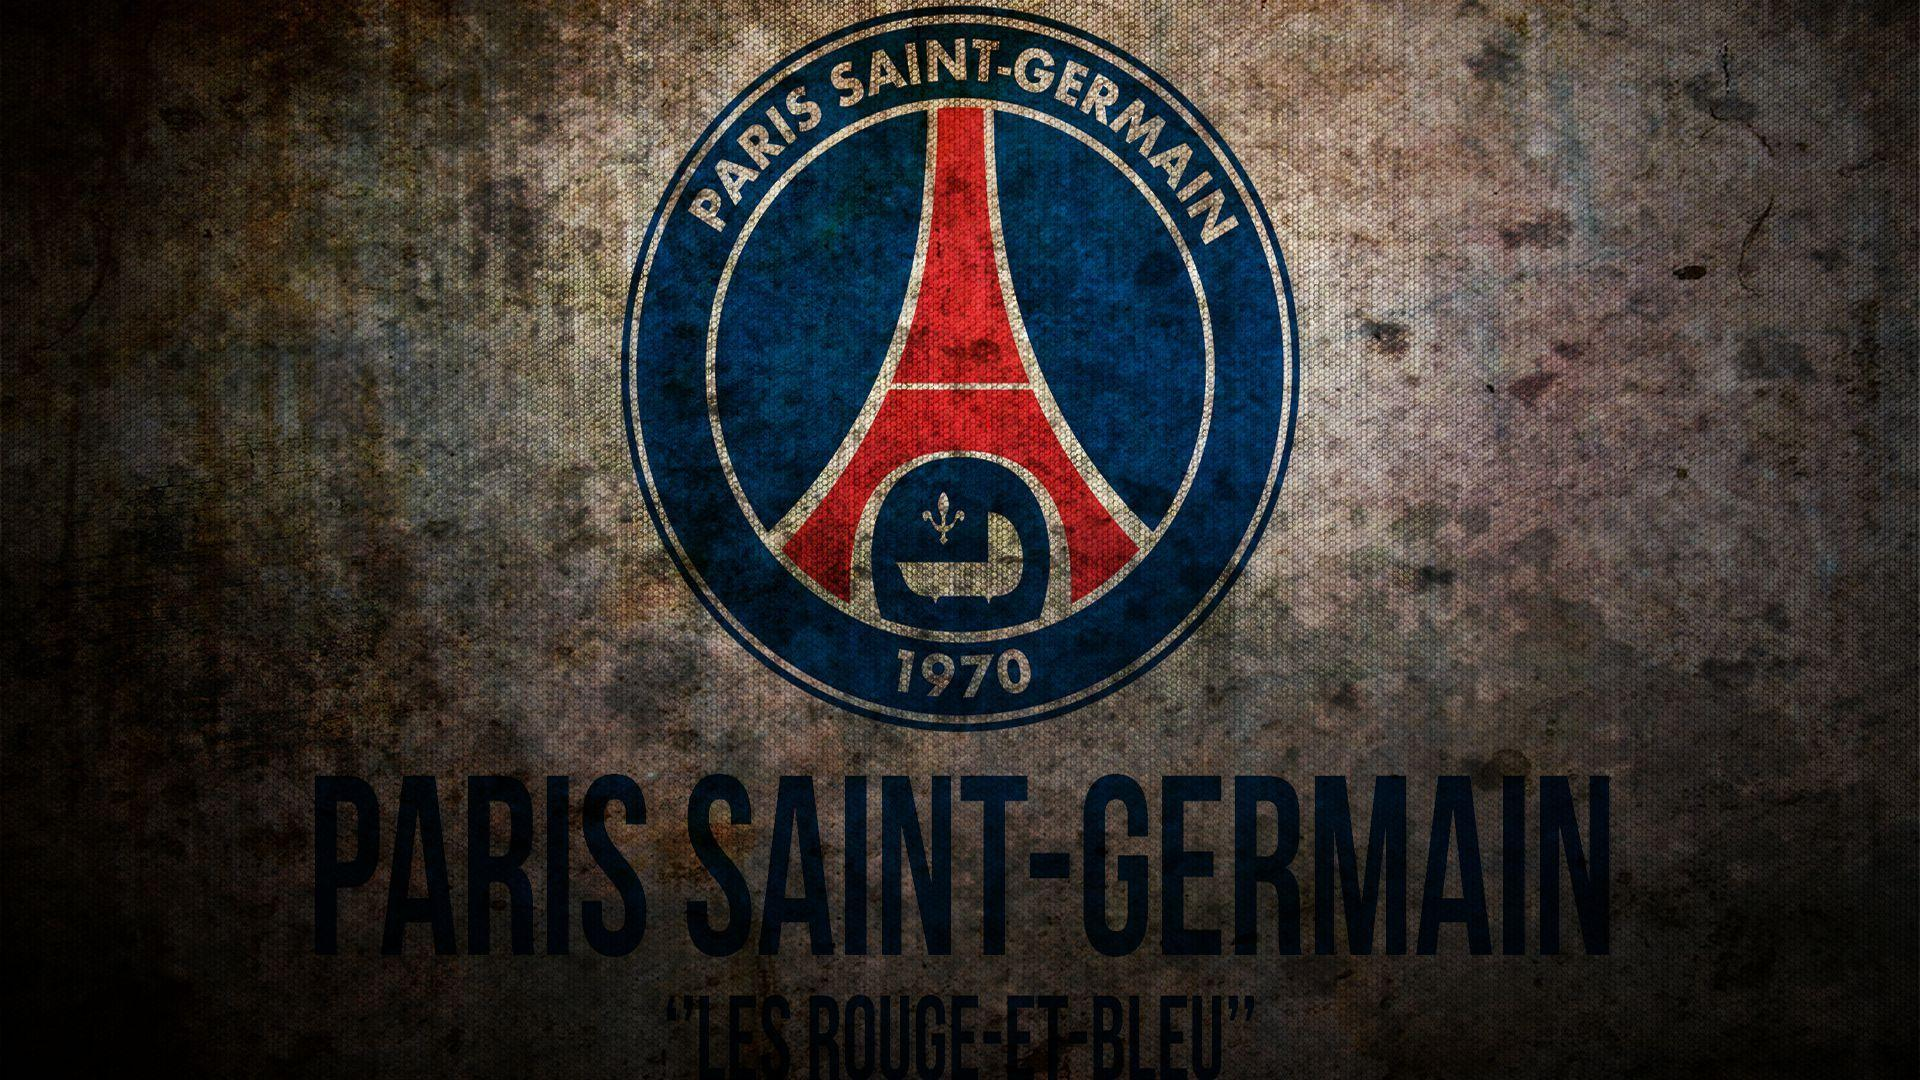 Download Wallpaper Paris Saint Germain Musim 2015 2016